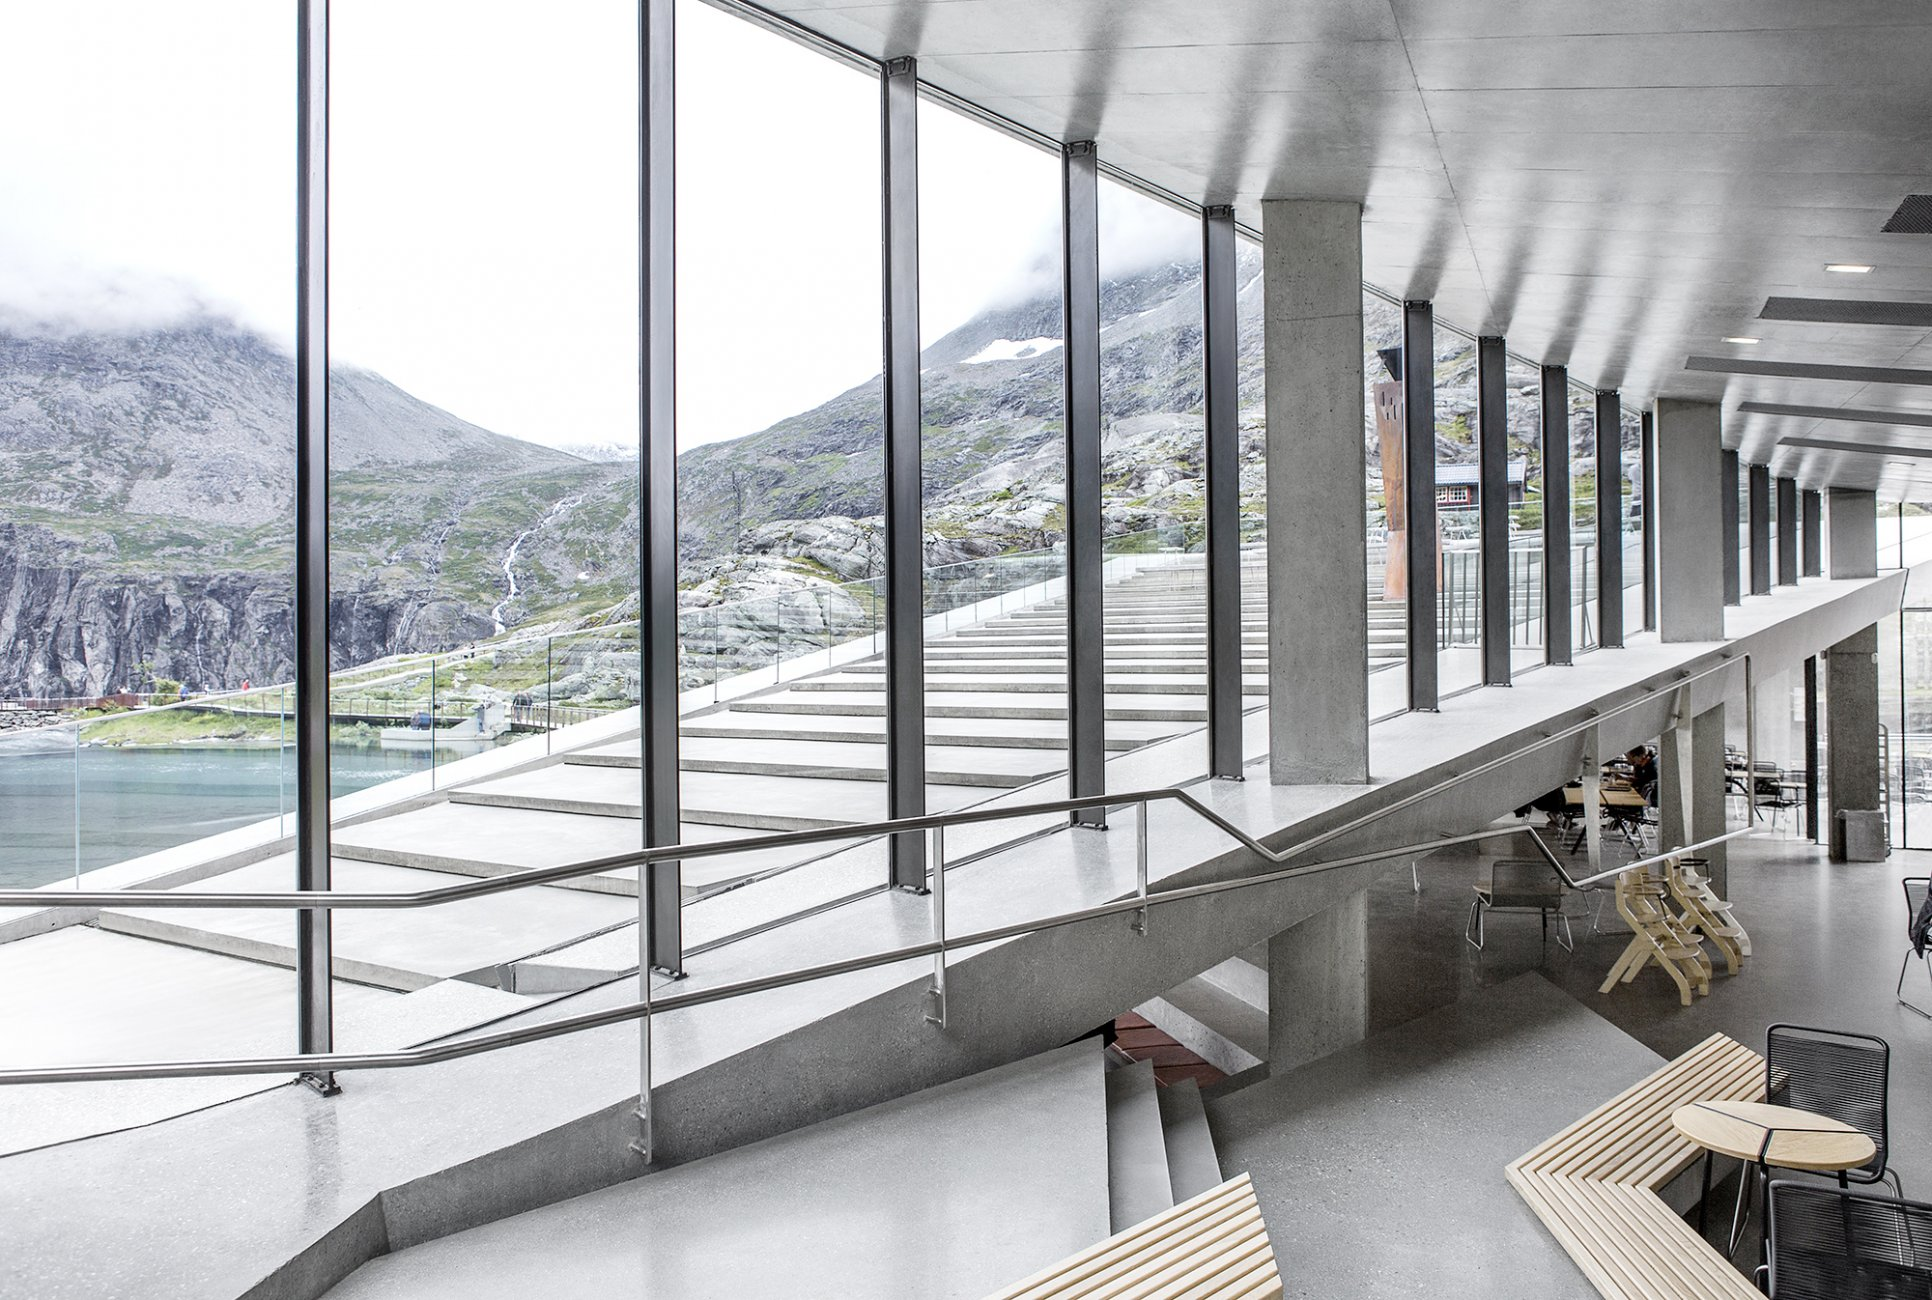 Trollstigen Visitor Centre & Viewpoint